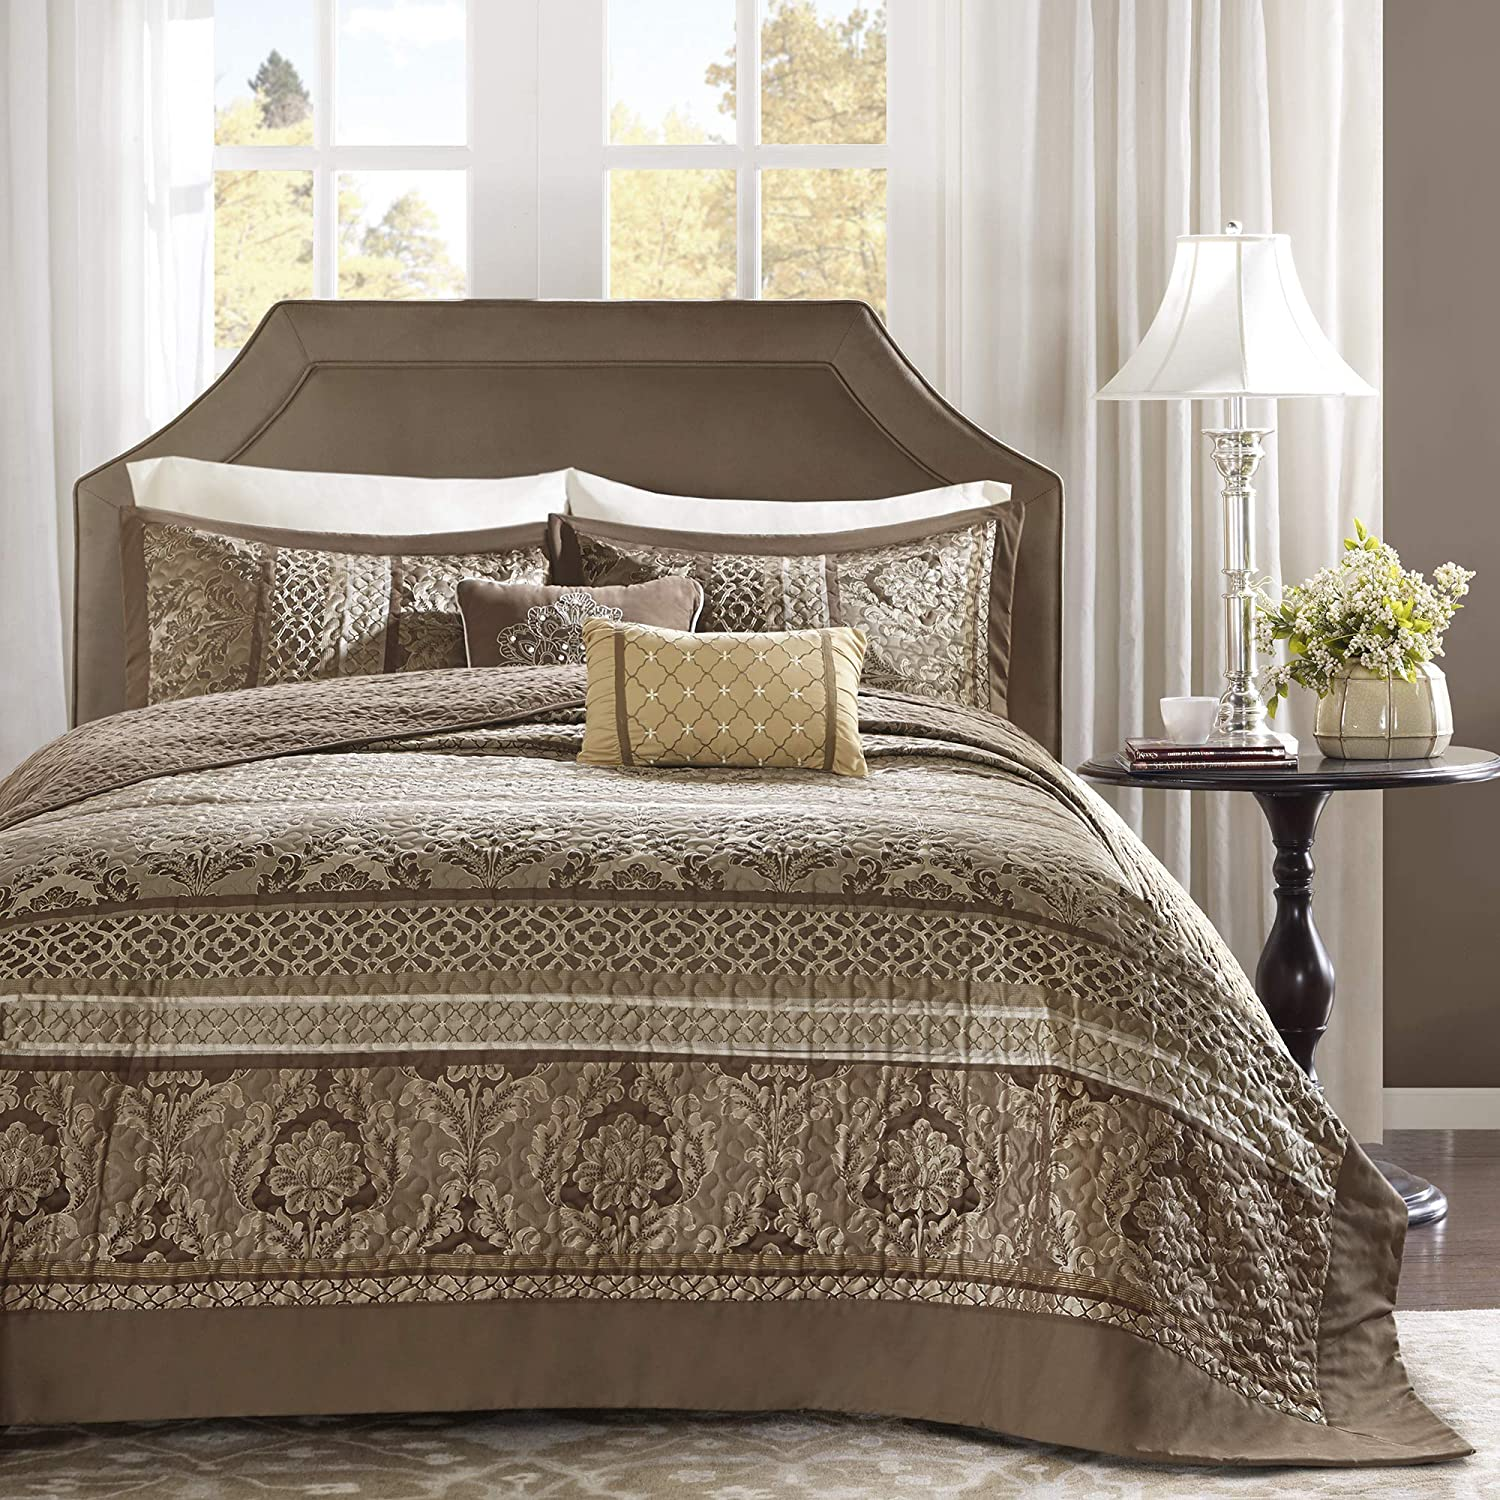 Madison Park Striped Bedspread Set, Oversize Queen, Brown/Gold